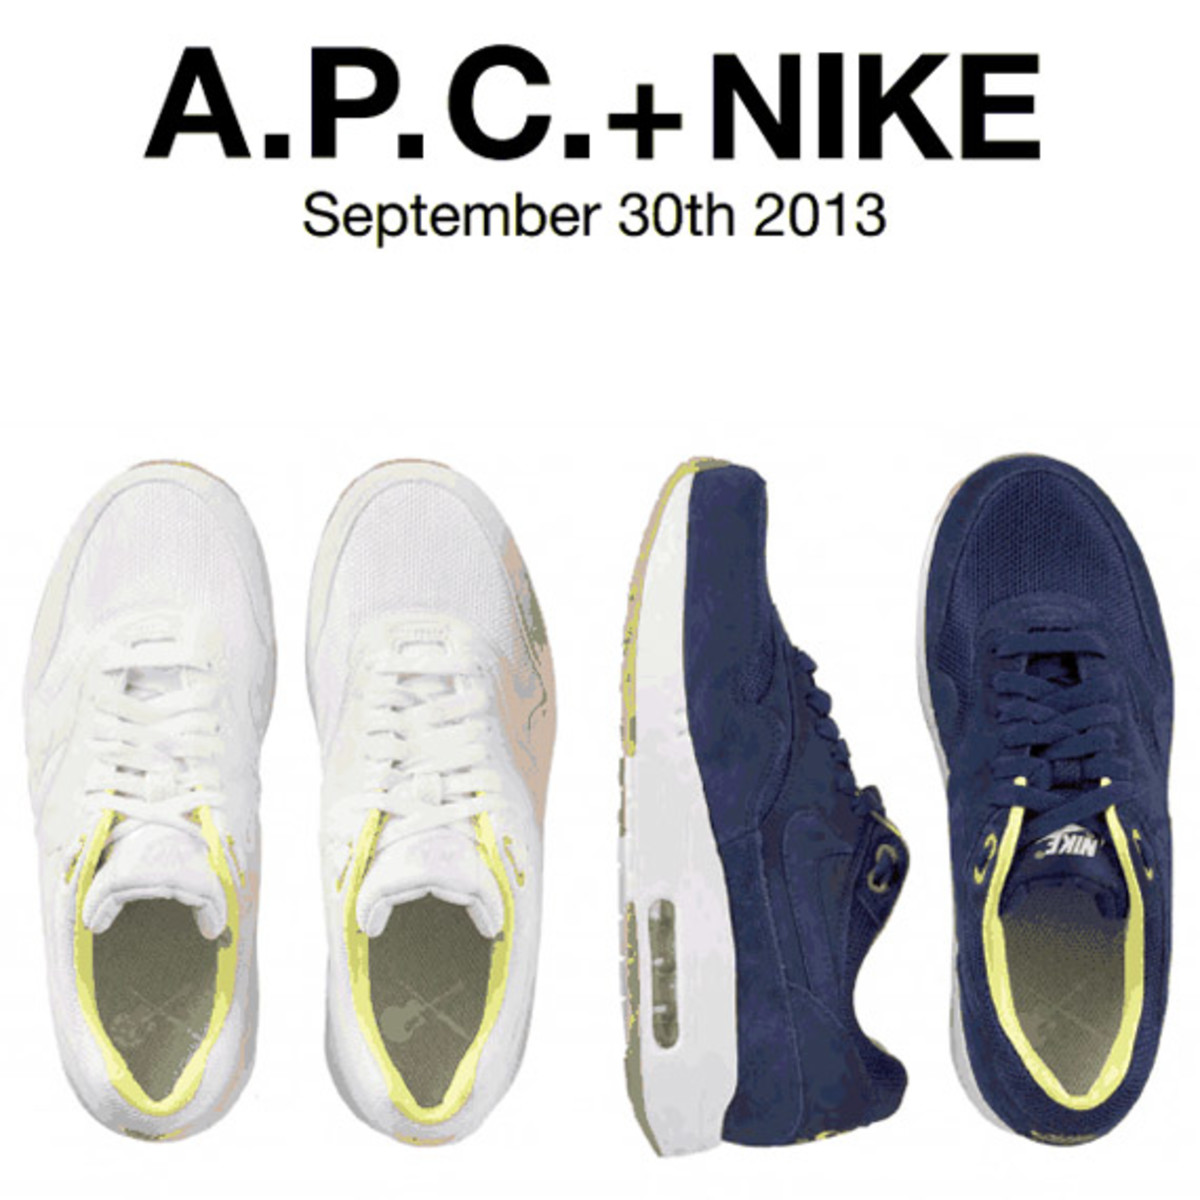 a-p-c-nike-air-max-1-fall-winter-2013-collection-02